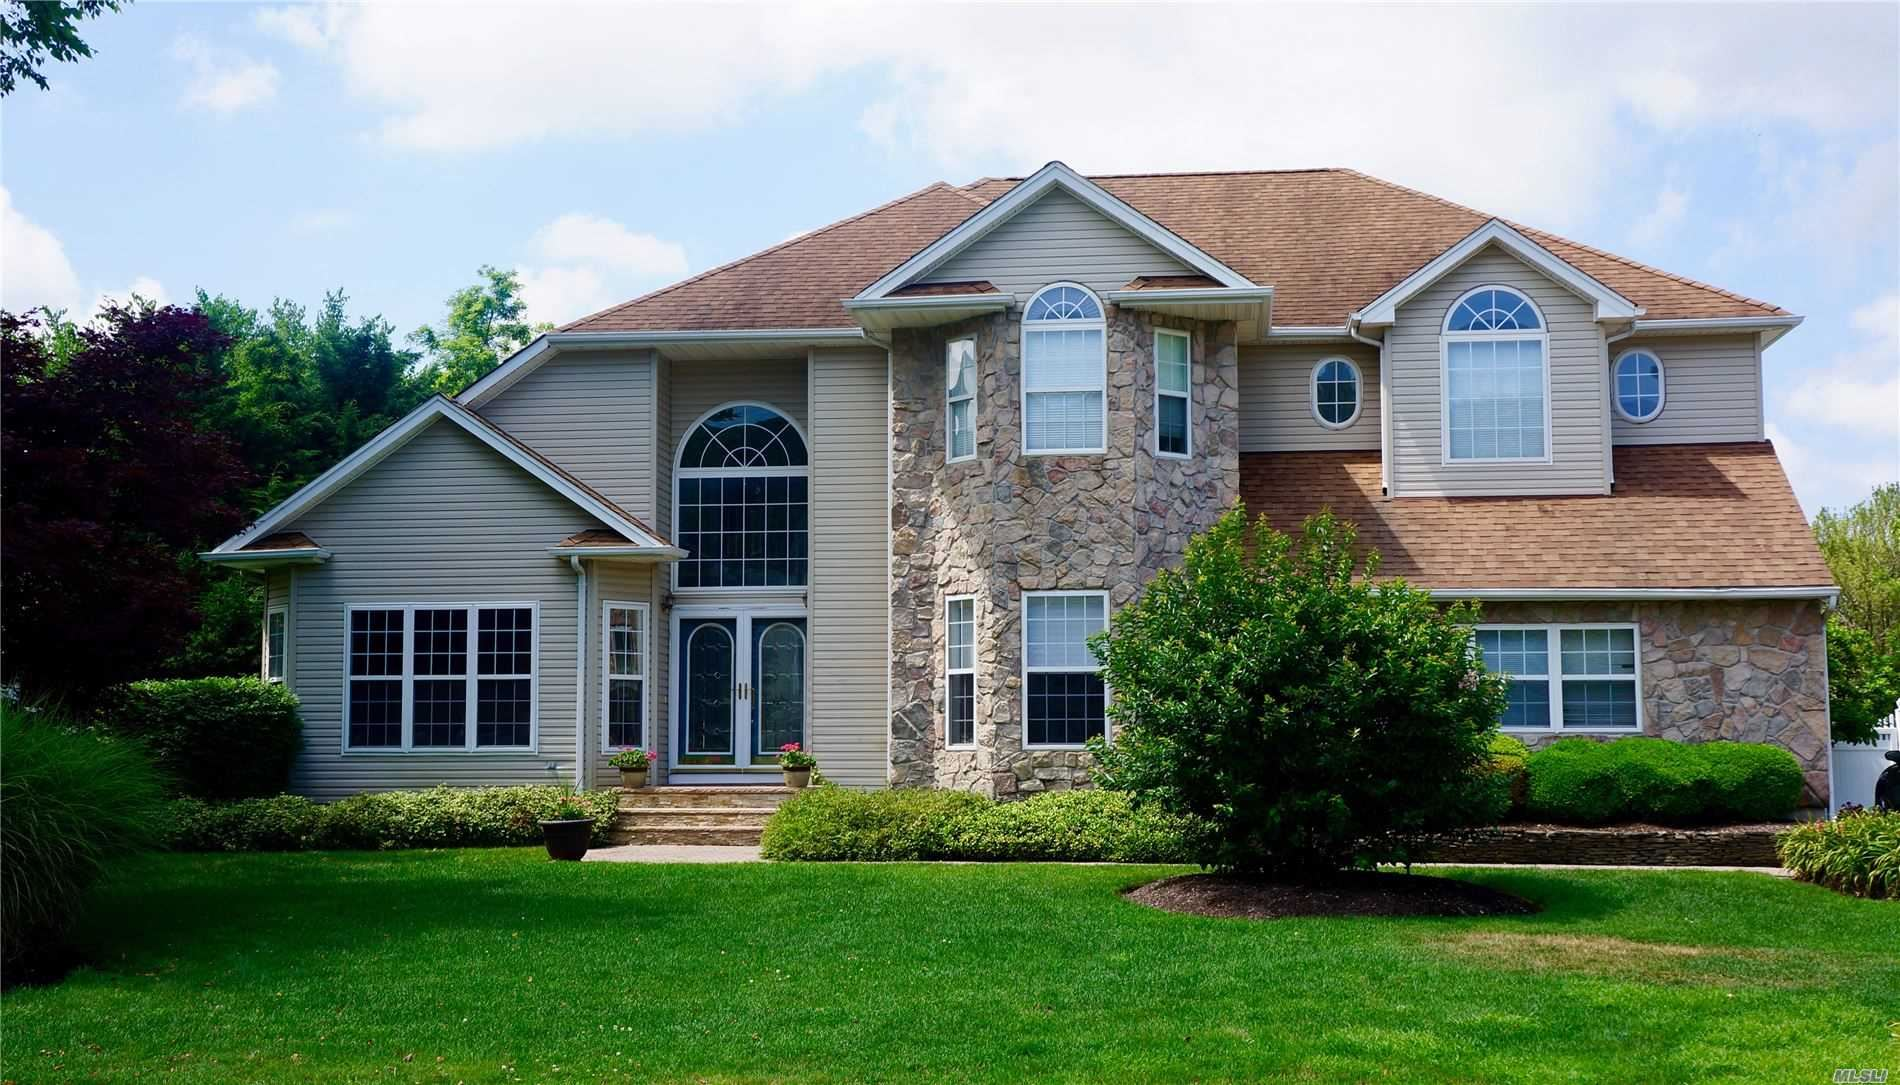 22 Grasslands Circle, Mount Sinai, NY 11766 - MLS#: 3231146